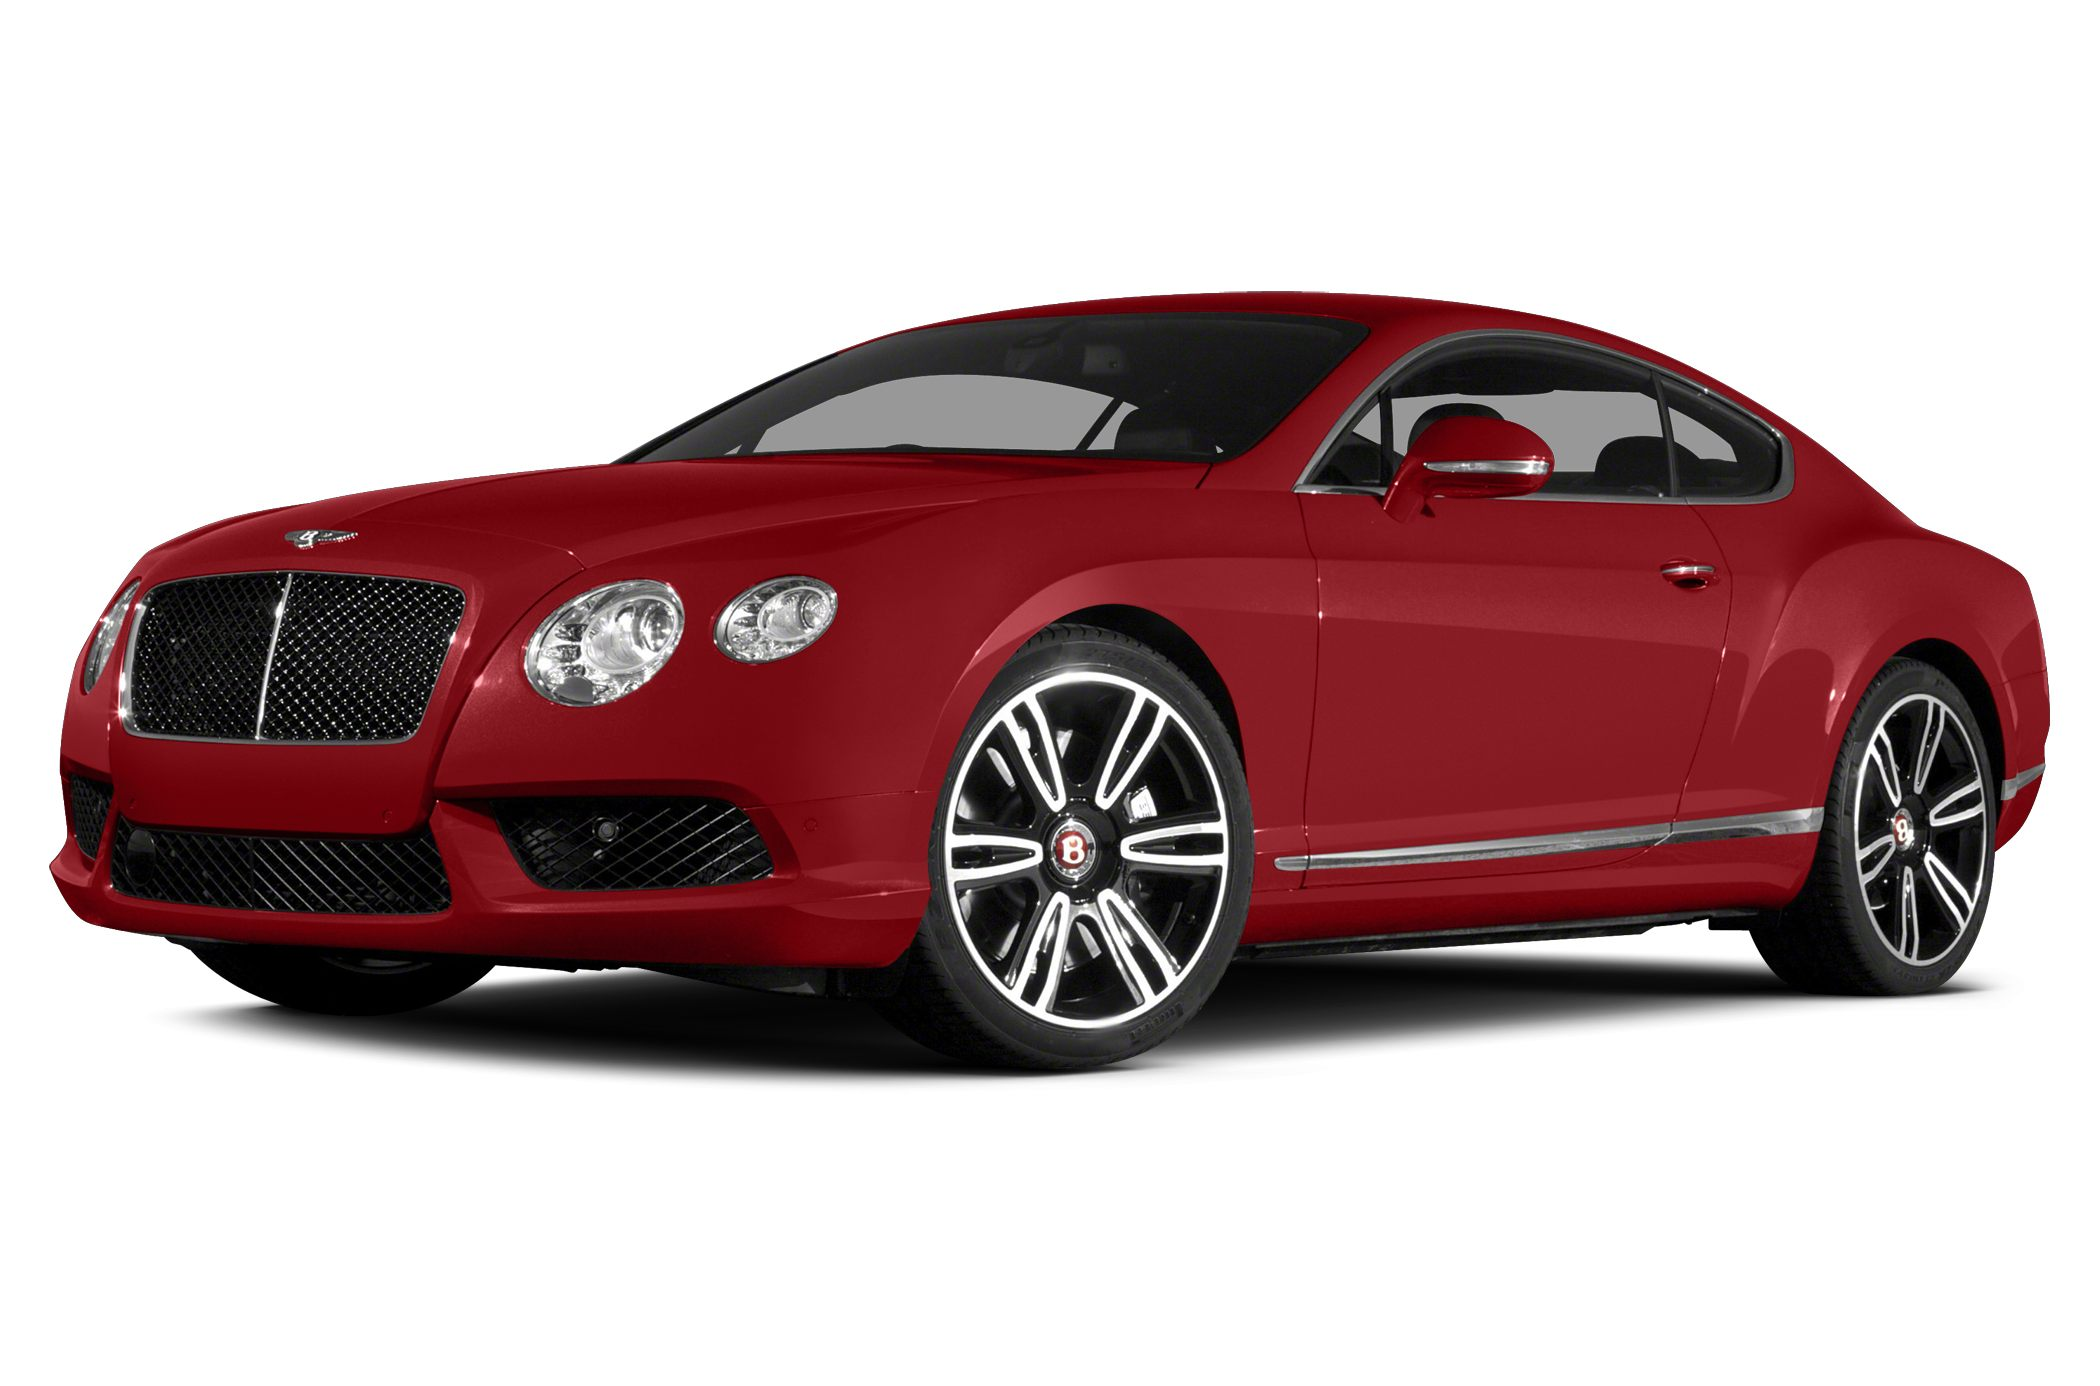 2015 Bentley Continental GT V8 Coupe for sale in Miami for $204,865 with 22 miles.